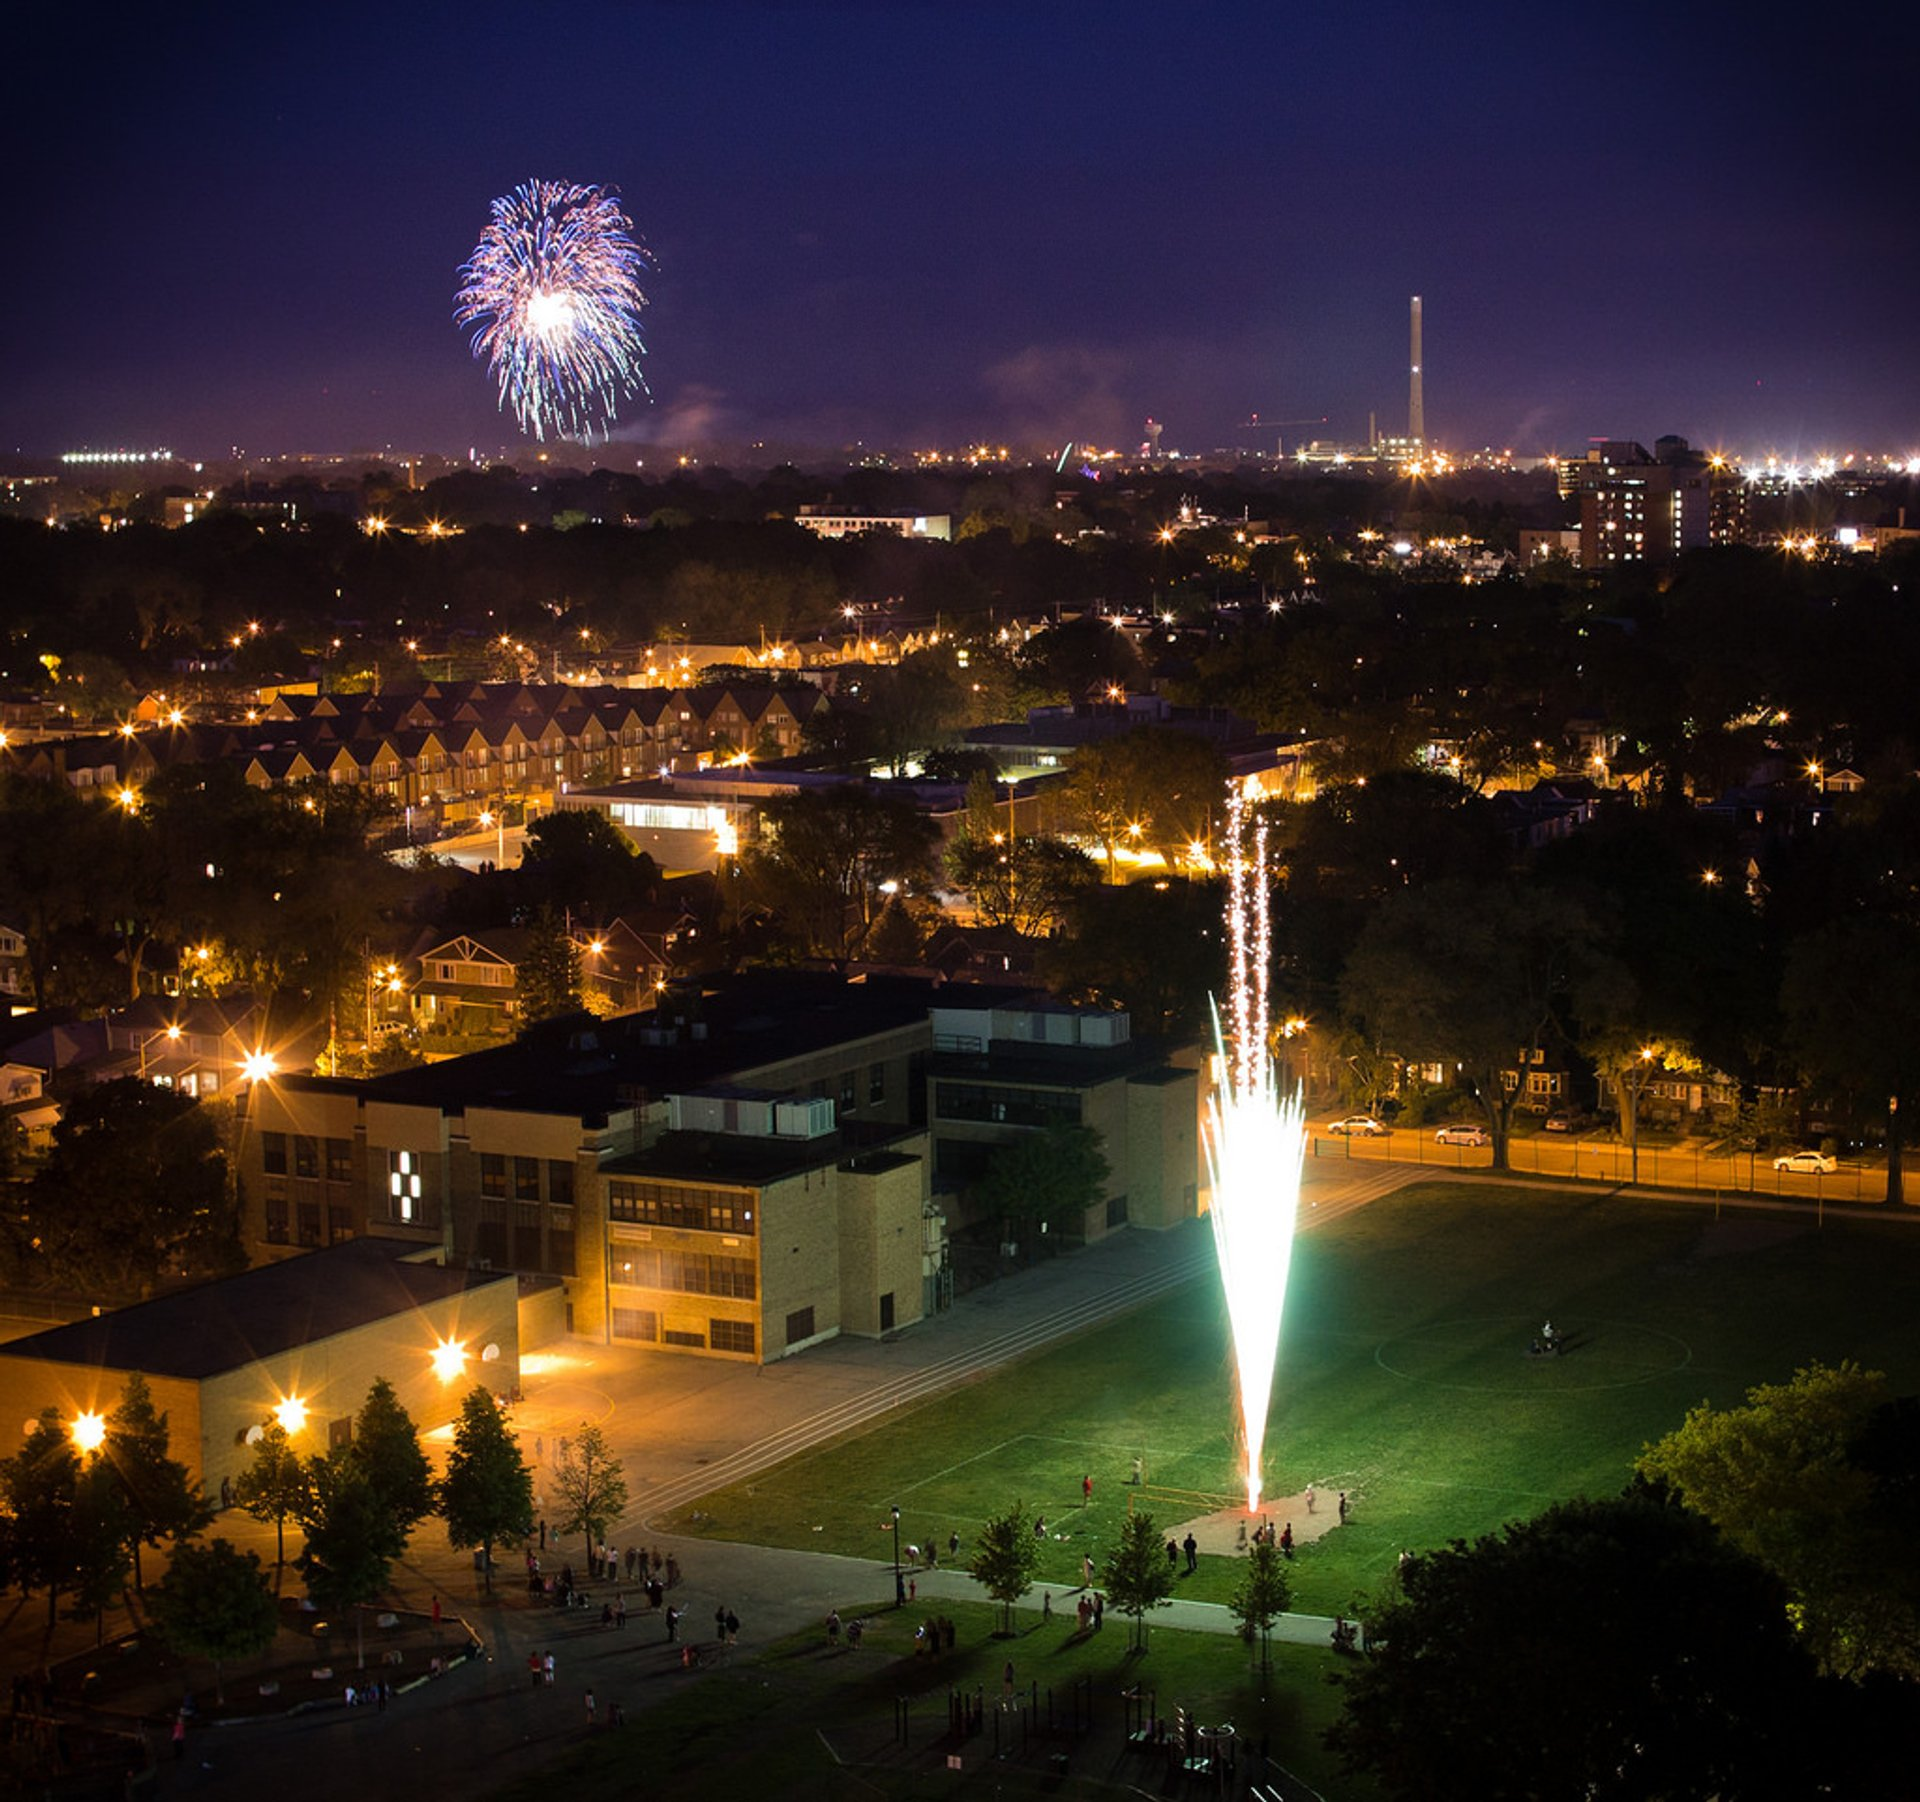 Victoria Day Fireworks in Toronto - Best Season 2020